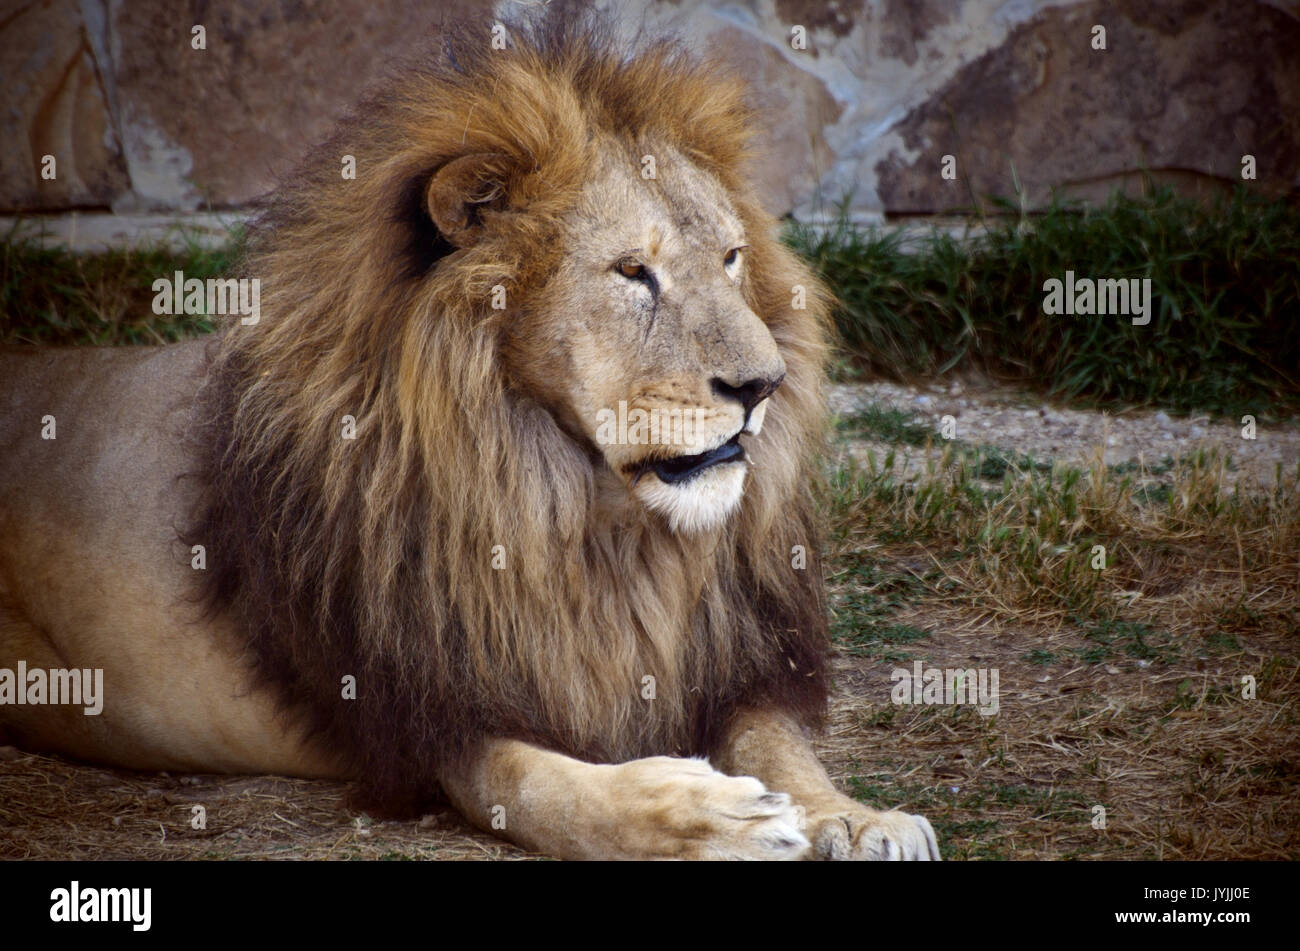 Male Lion resting in the zoo. Wild old lion potrait - Stock Image